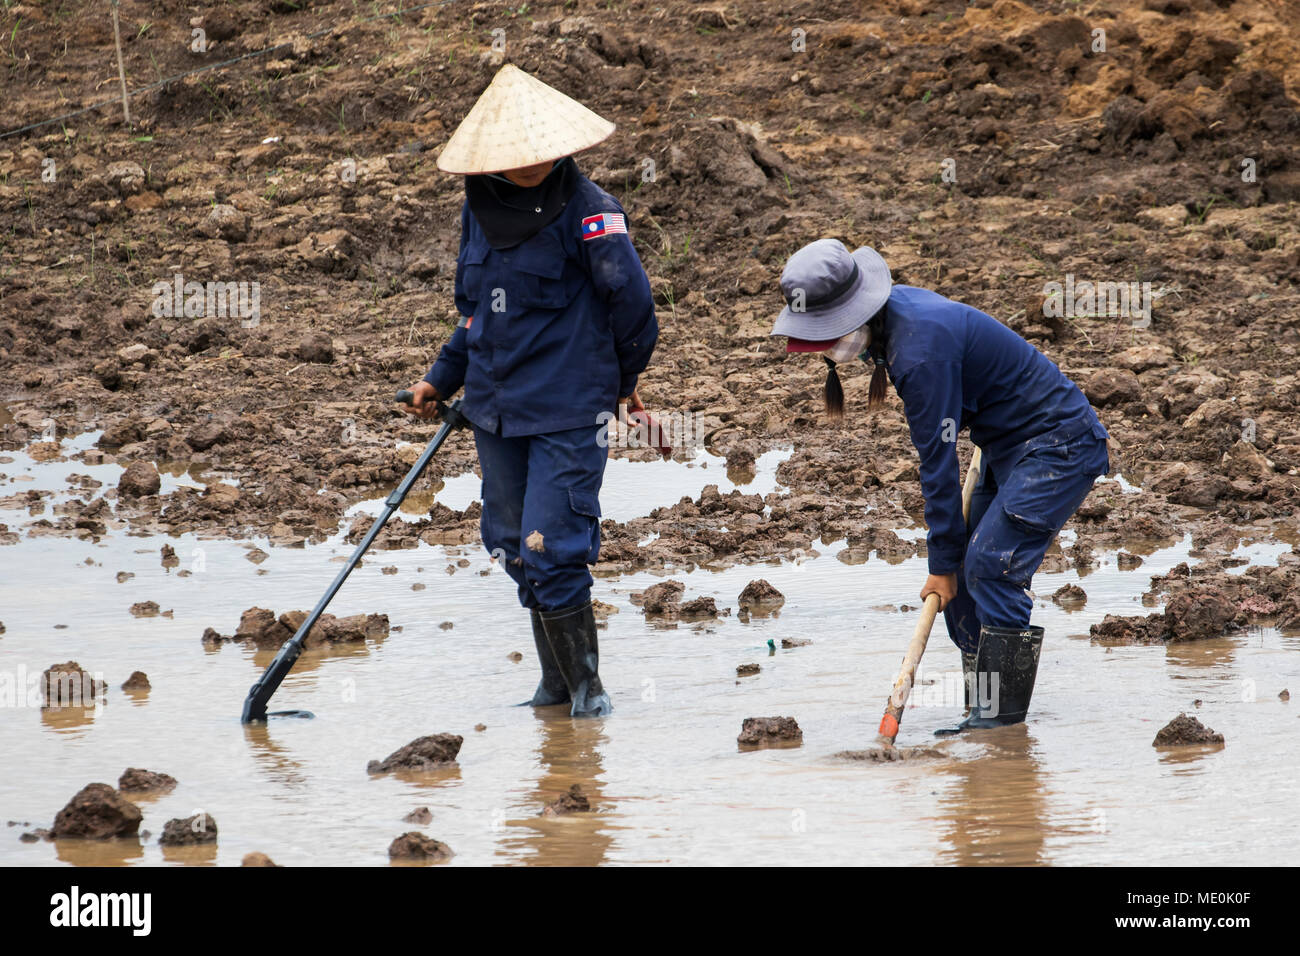 Women using a metal detector while clearing landmines in a